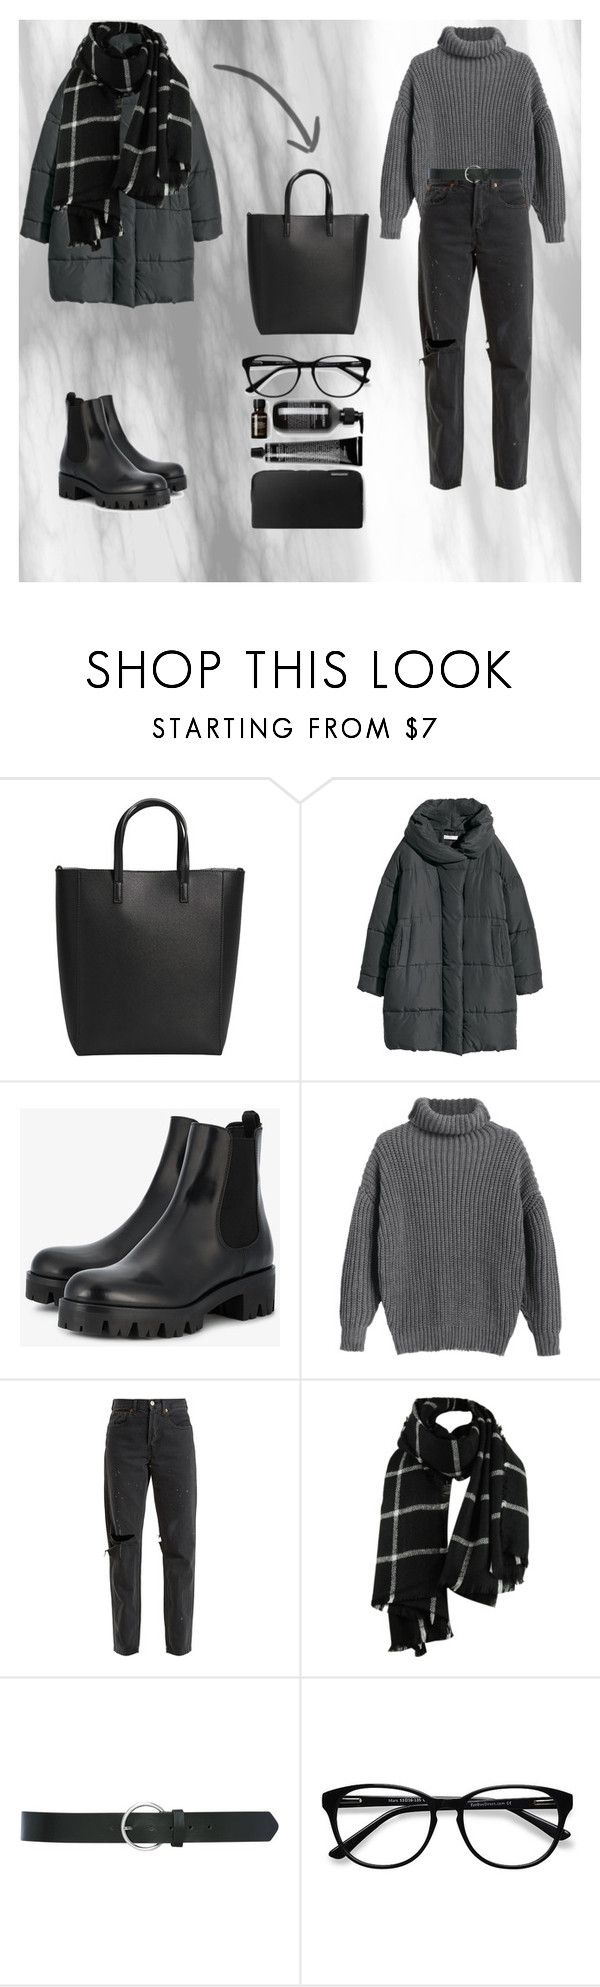 """""""going to cinema"""" by deadbeat-horn on Polyvore featuring MANGO, Prada, RE/DONE, M&Co and EyeBuyDirect.com"""